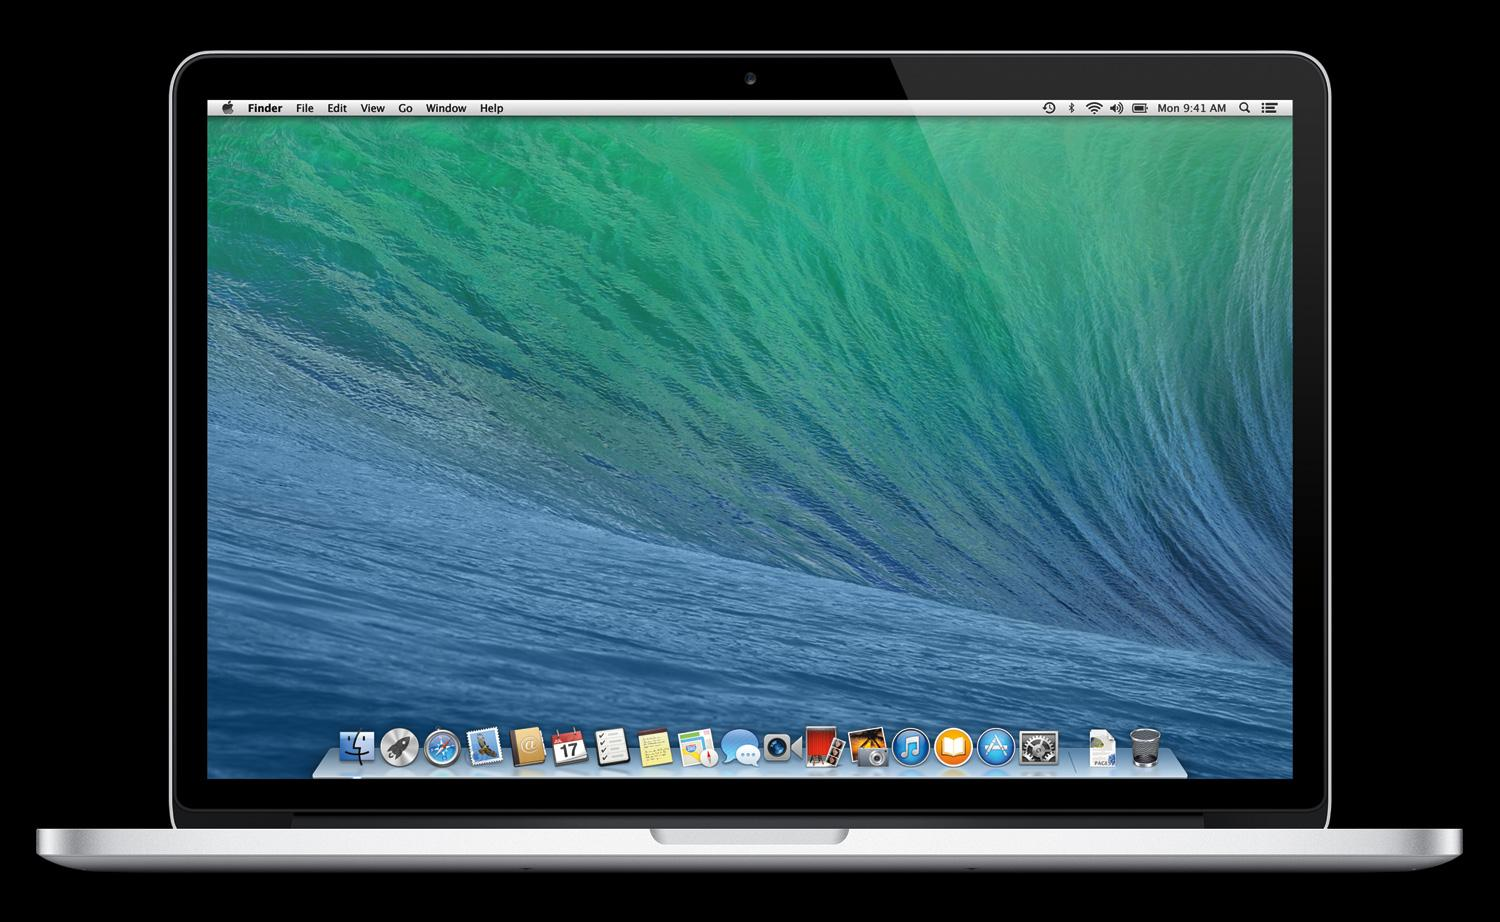 Mavericks Expected Soon As Apple Issues Gm Build To